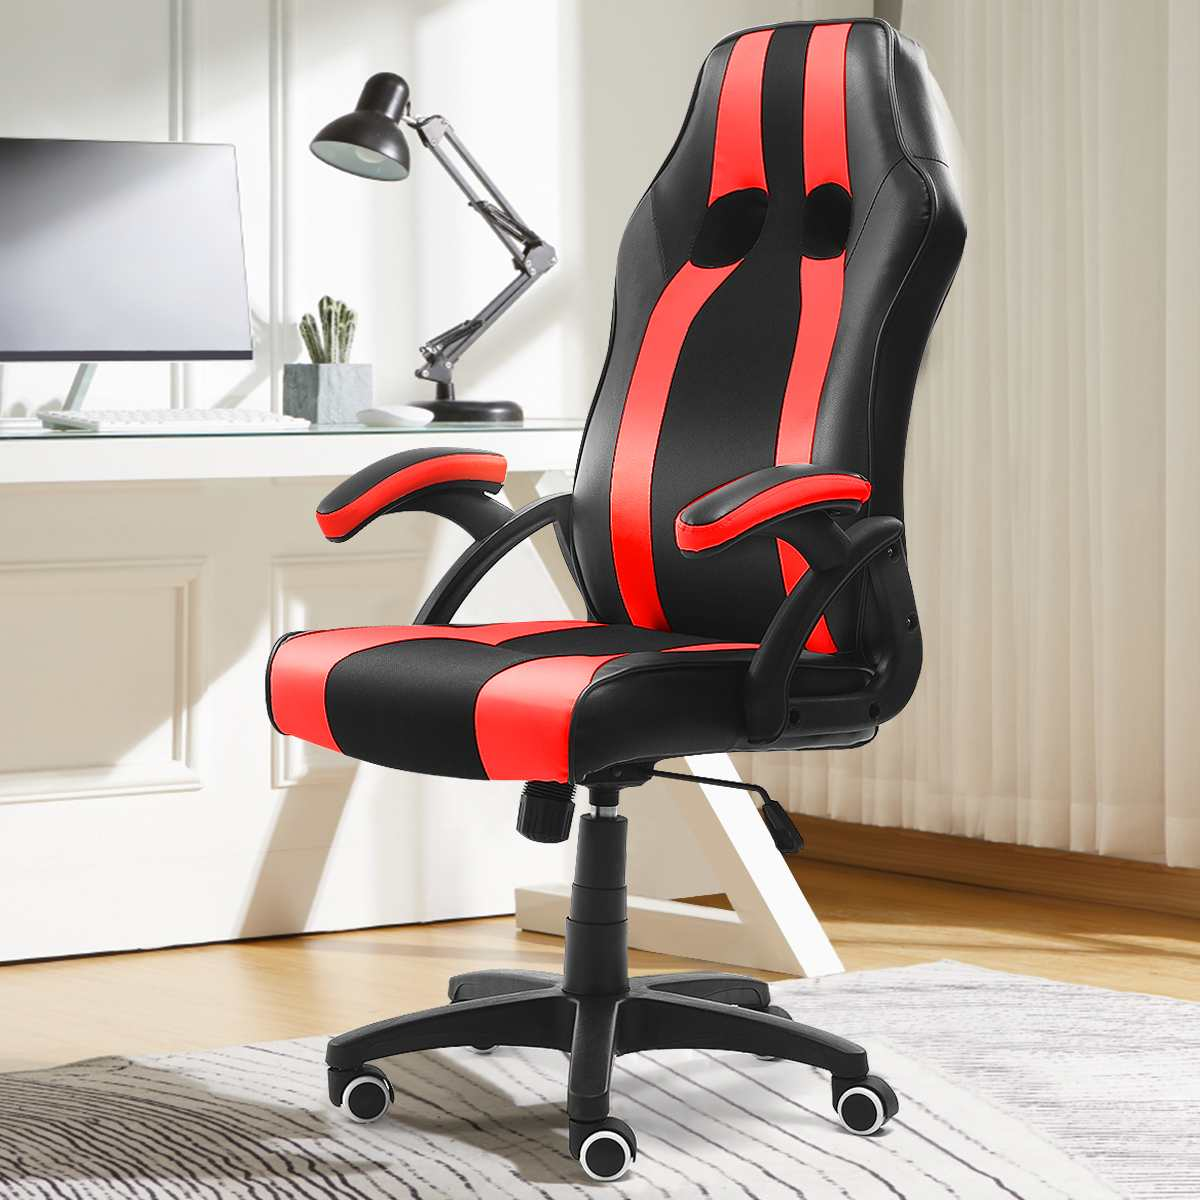 H7af52ff3799047ff9ed86e9a15cbb5f3h - WCG Gaming Chair Computer Armchair Office Chairs Home Swivel Massage Chair Lifting Adjustable Desk Chair Lying Recliner Chair